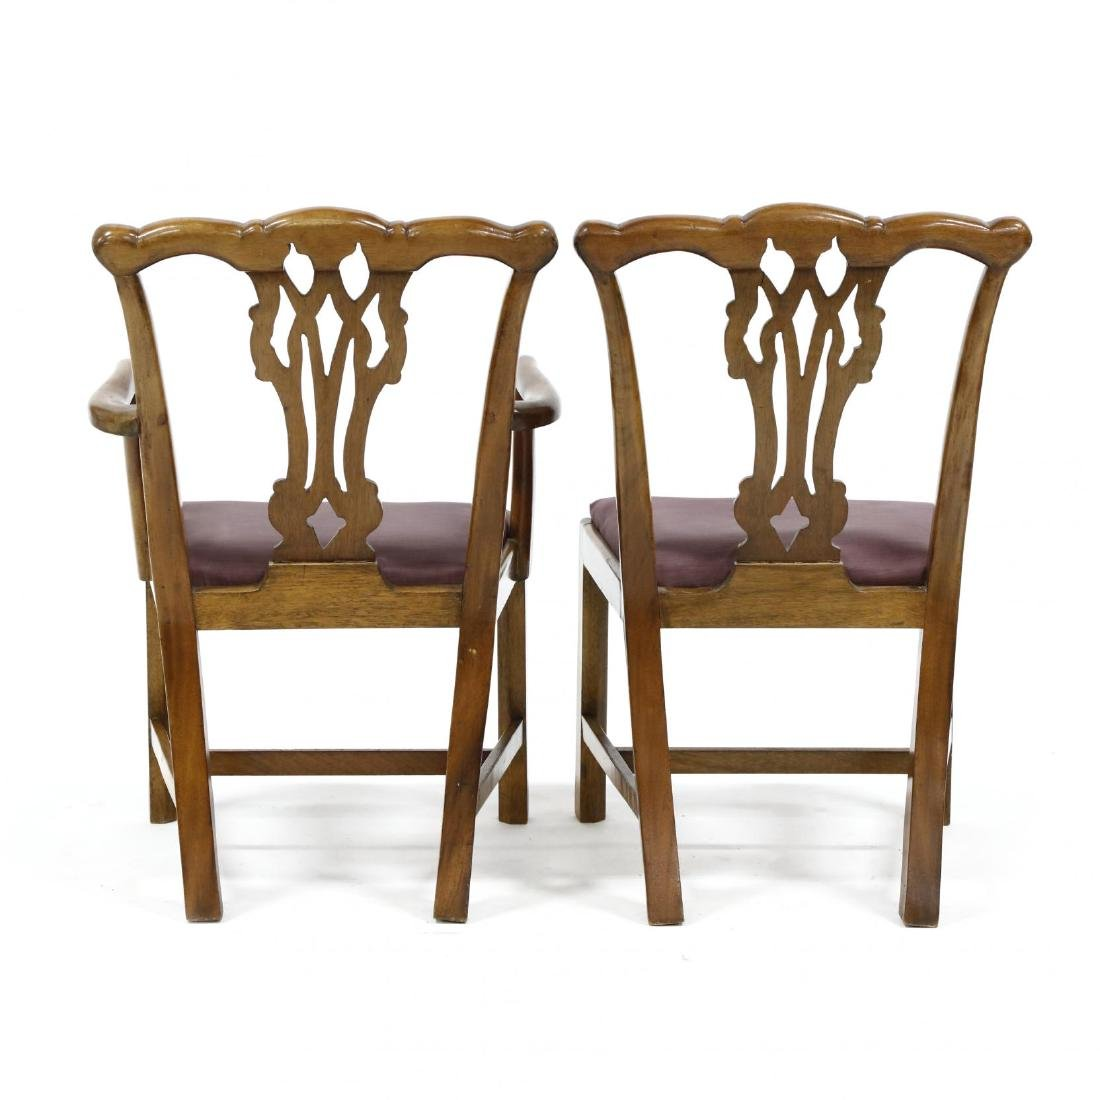 Pair of Chippendale Style Mahogany Child's Chairs - 3